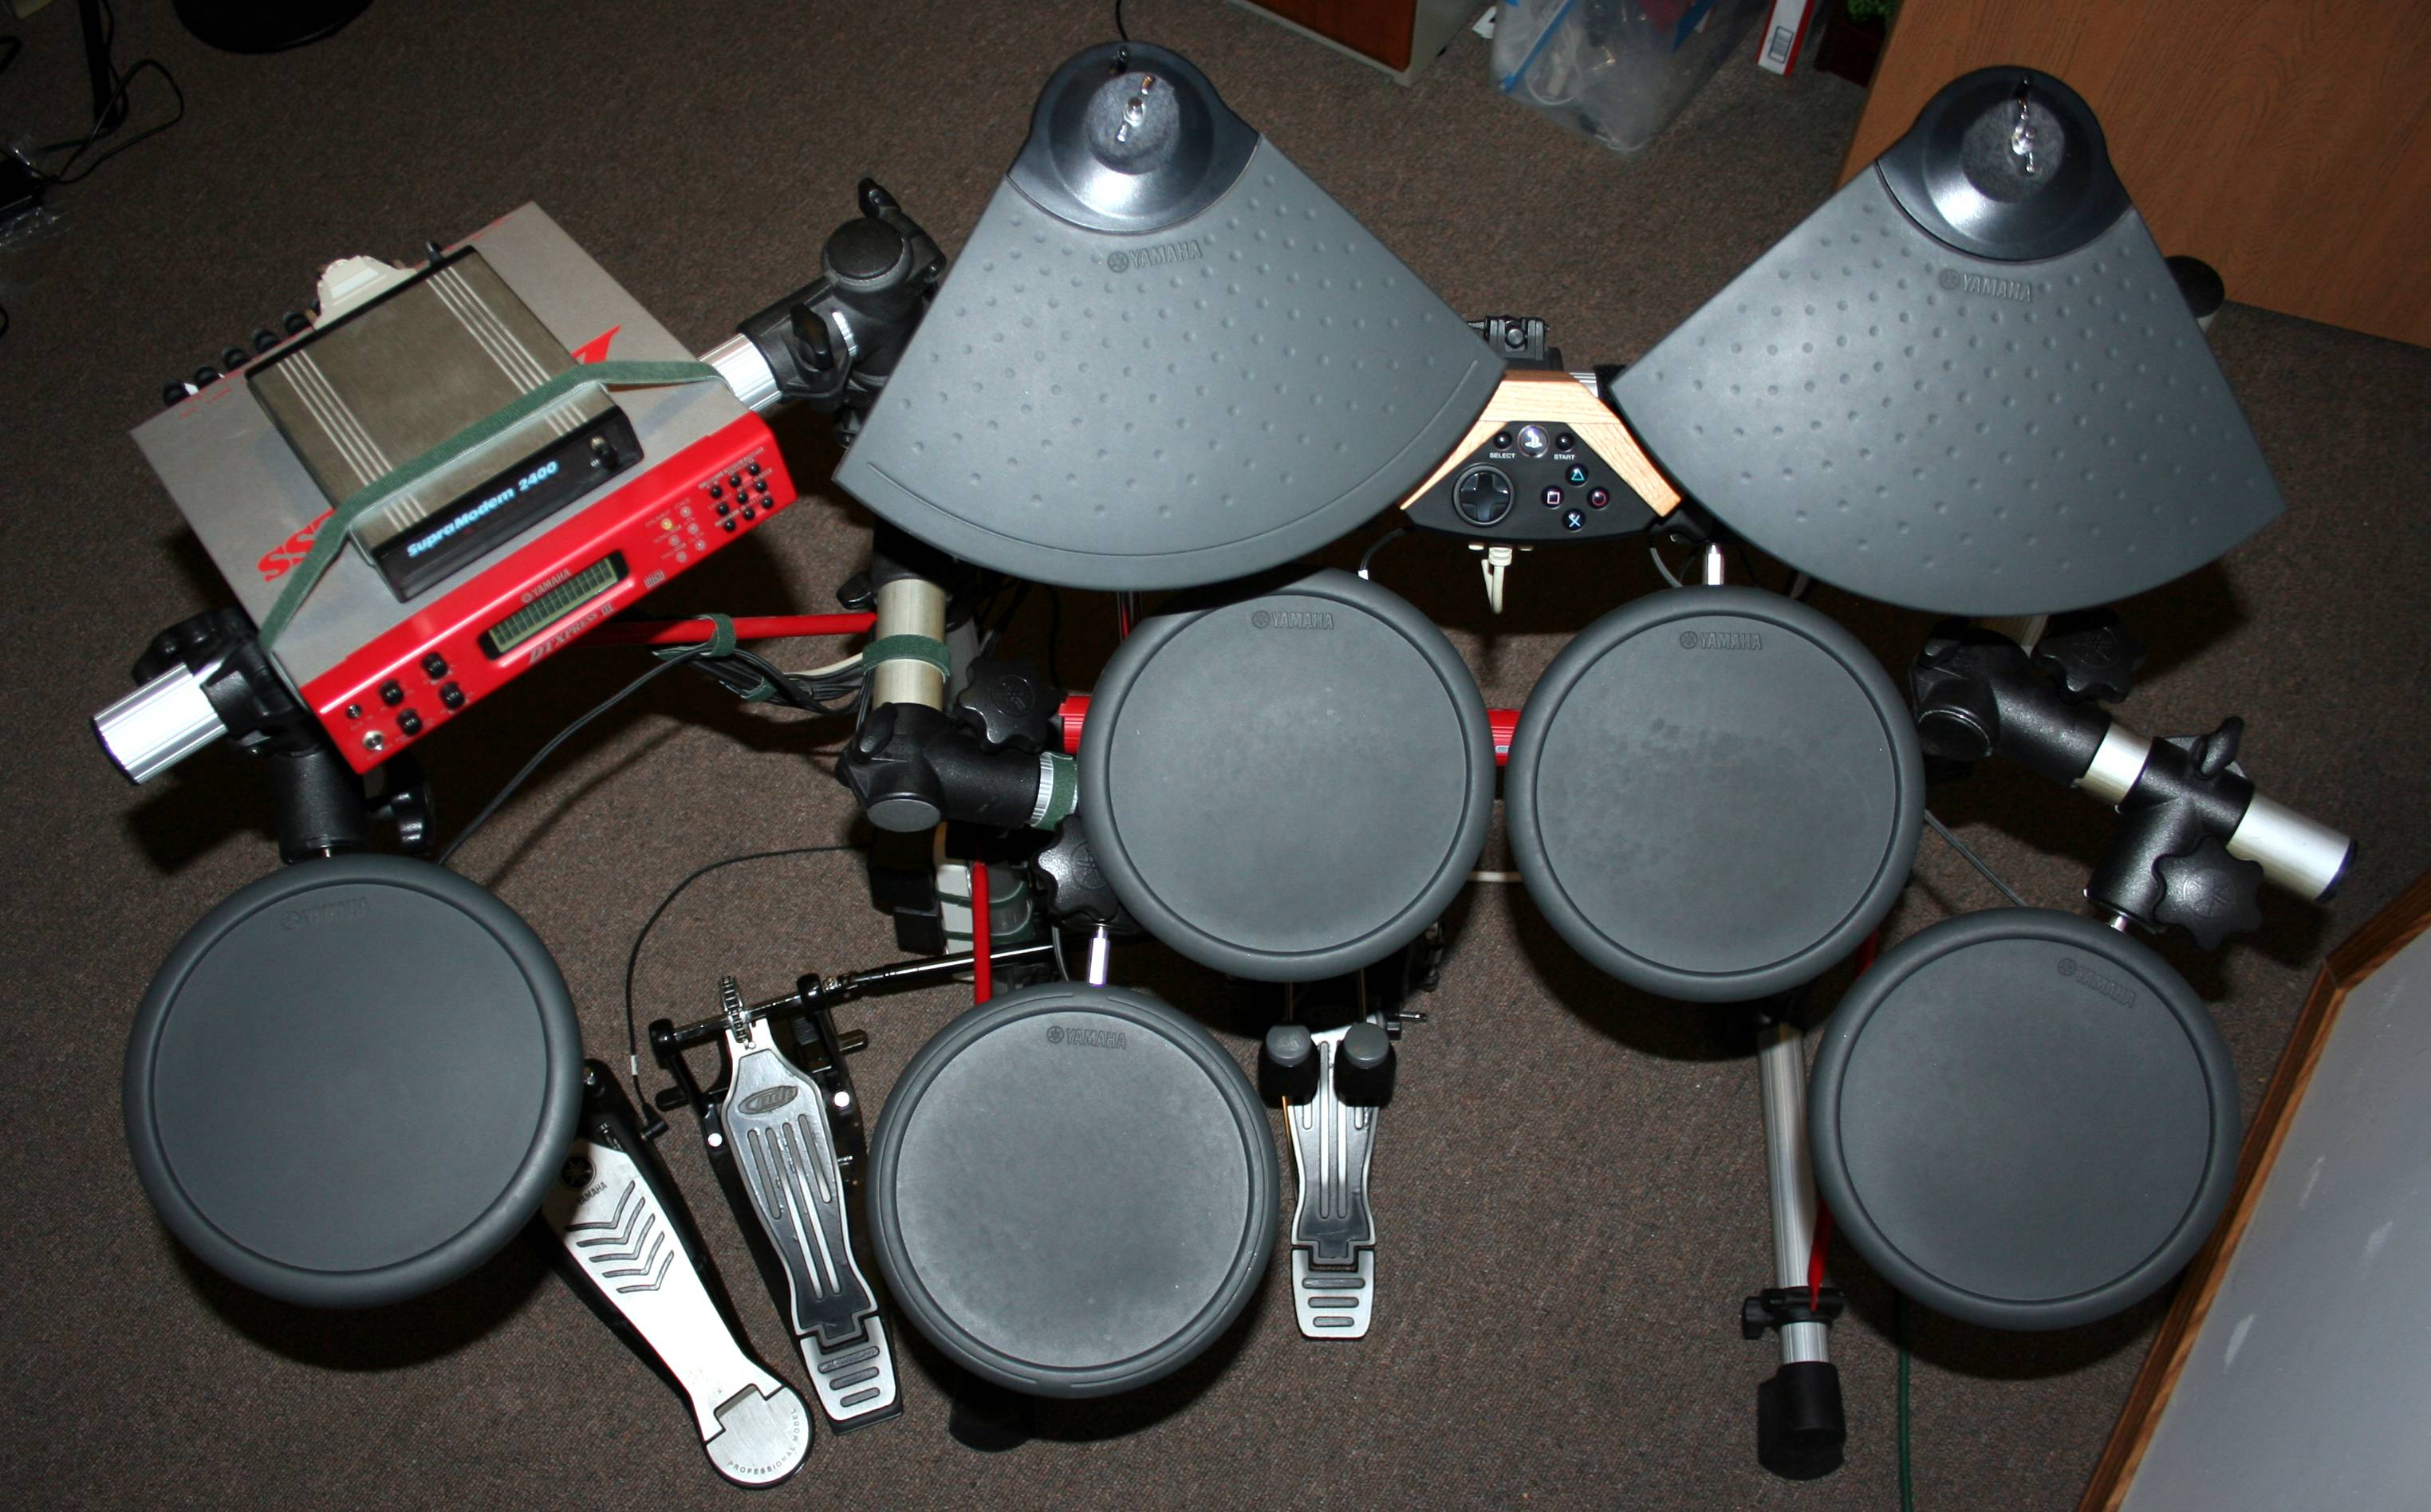 rock band 1 2 3 ps3 or wii yamaha dtxpress iii drums with double rh knightdeposit com yamaha dtx 500 instruction manual yamaha dtx user manual